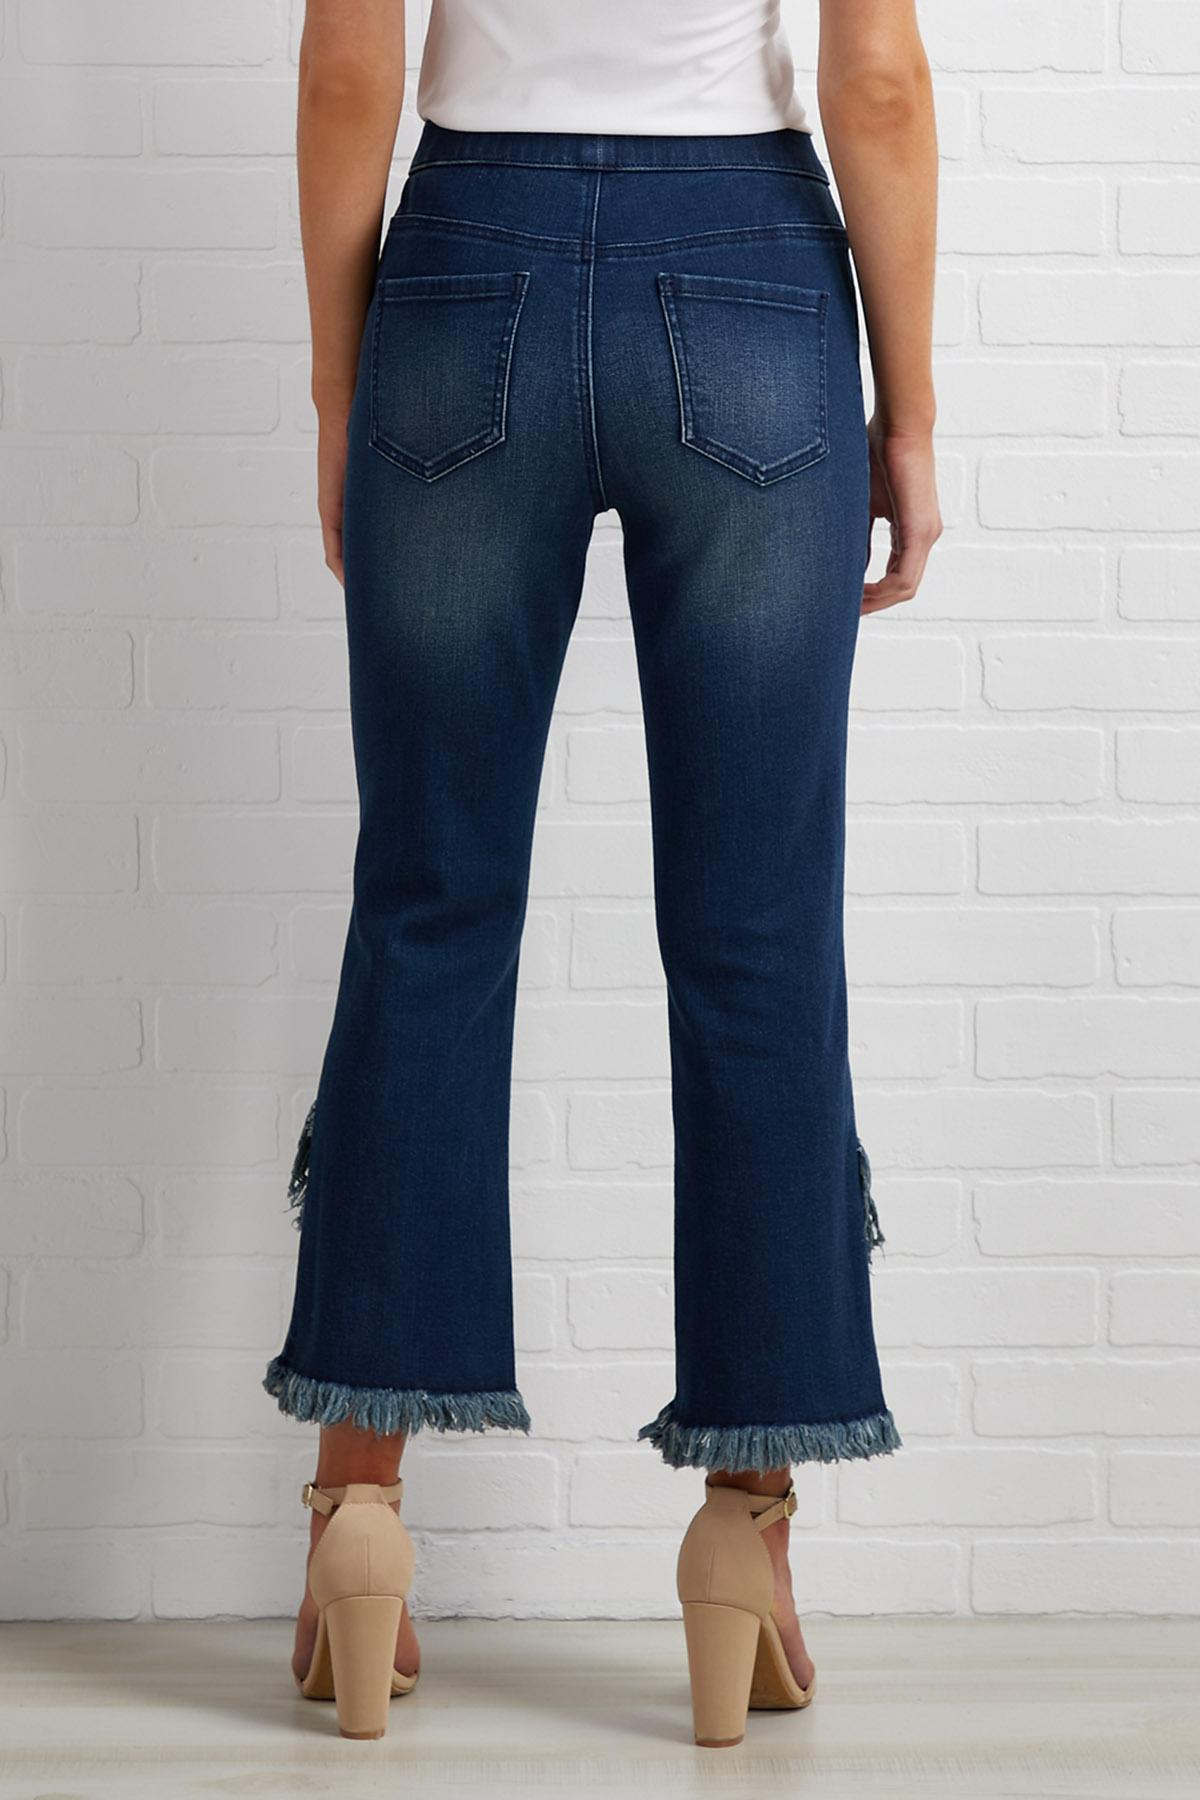 Break Up With Hem Jeans